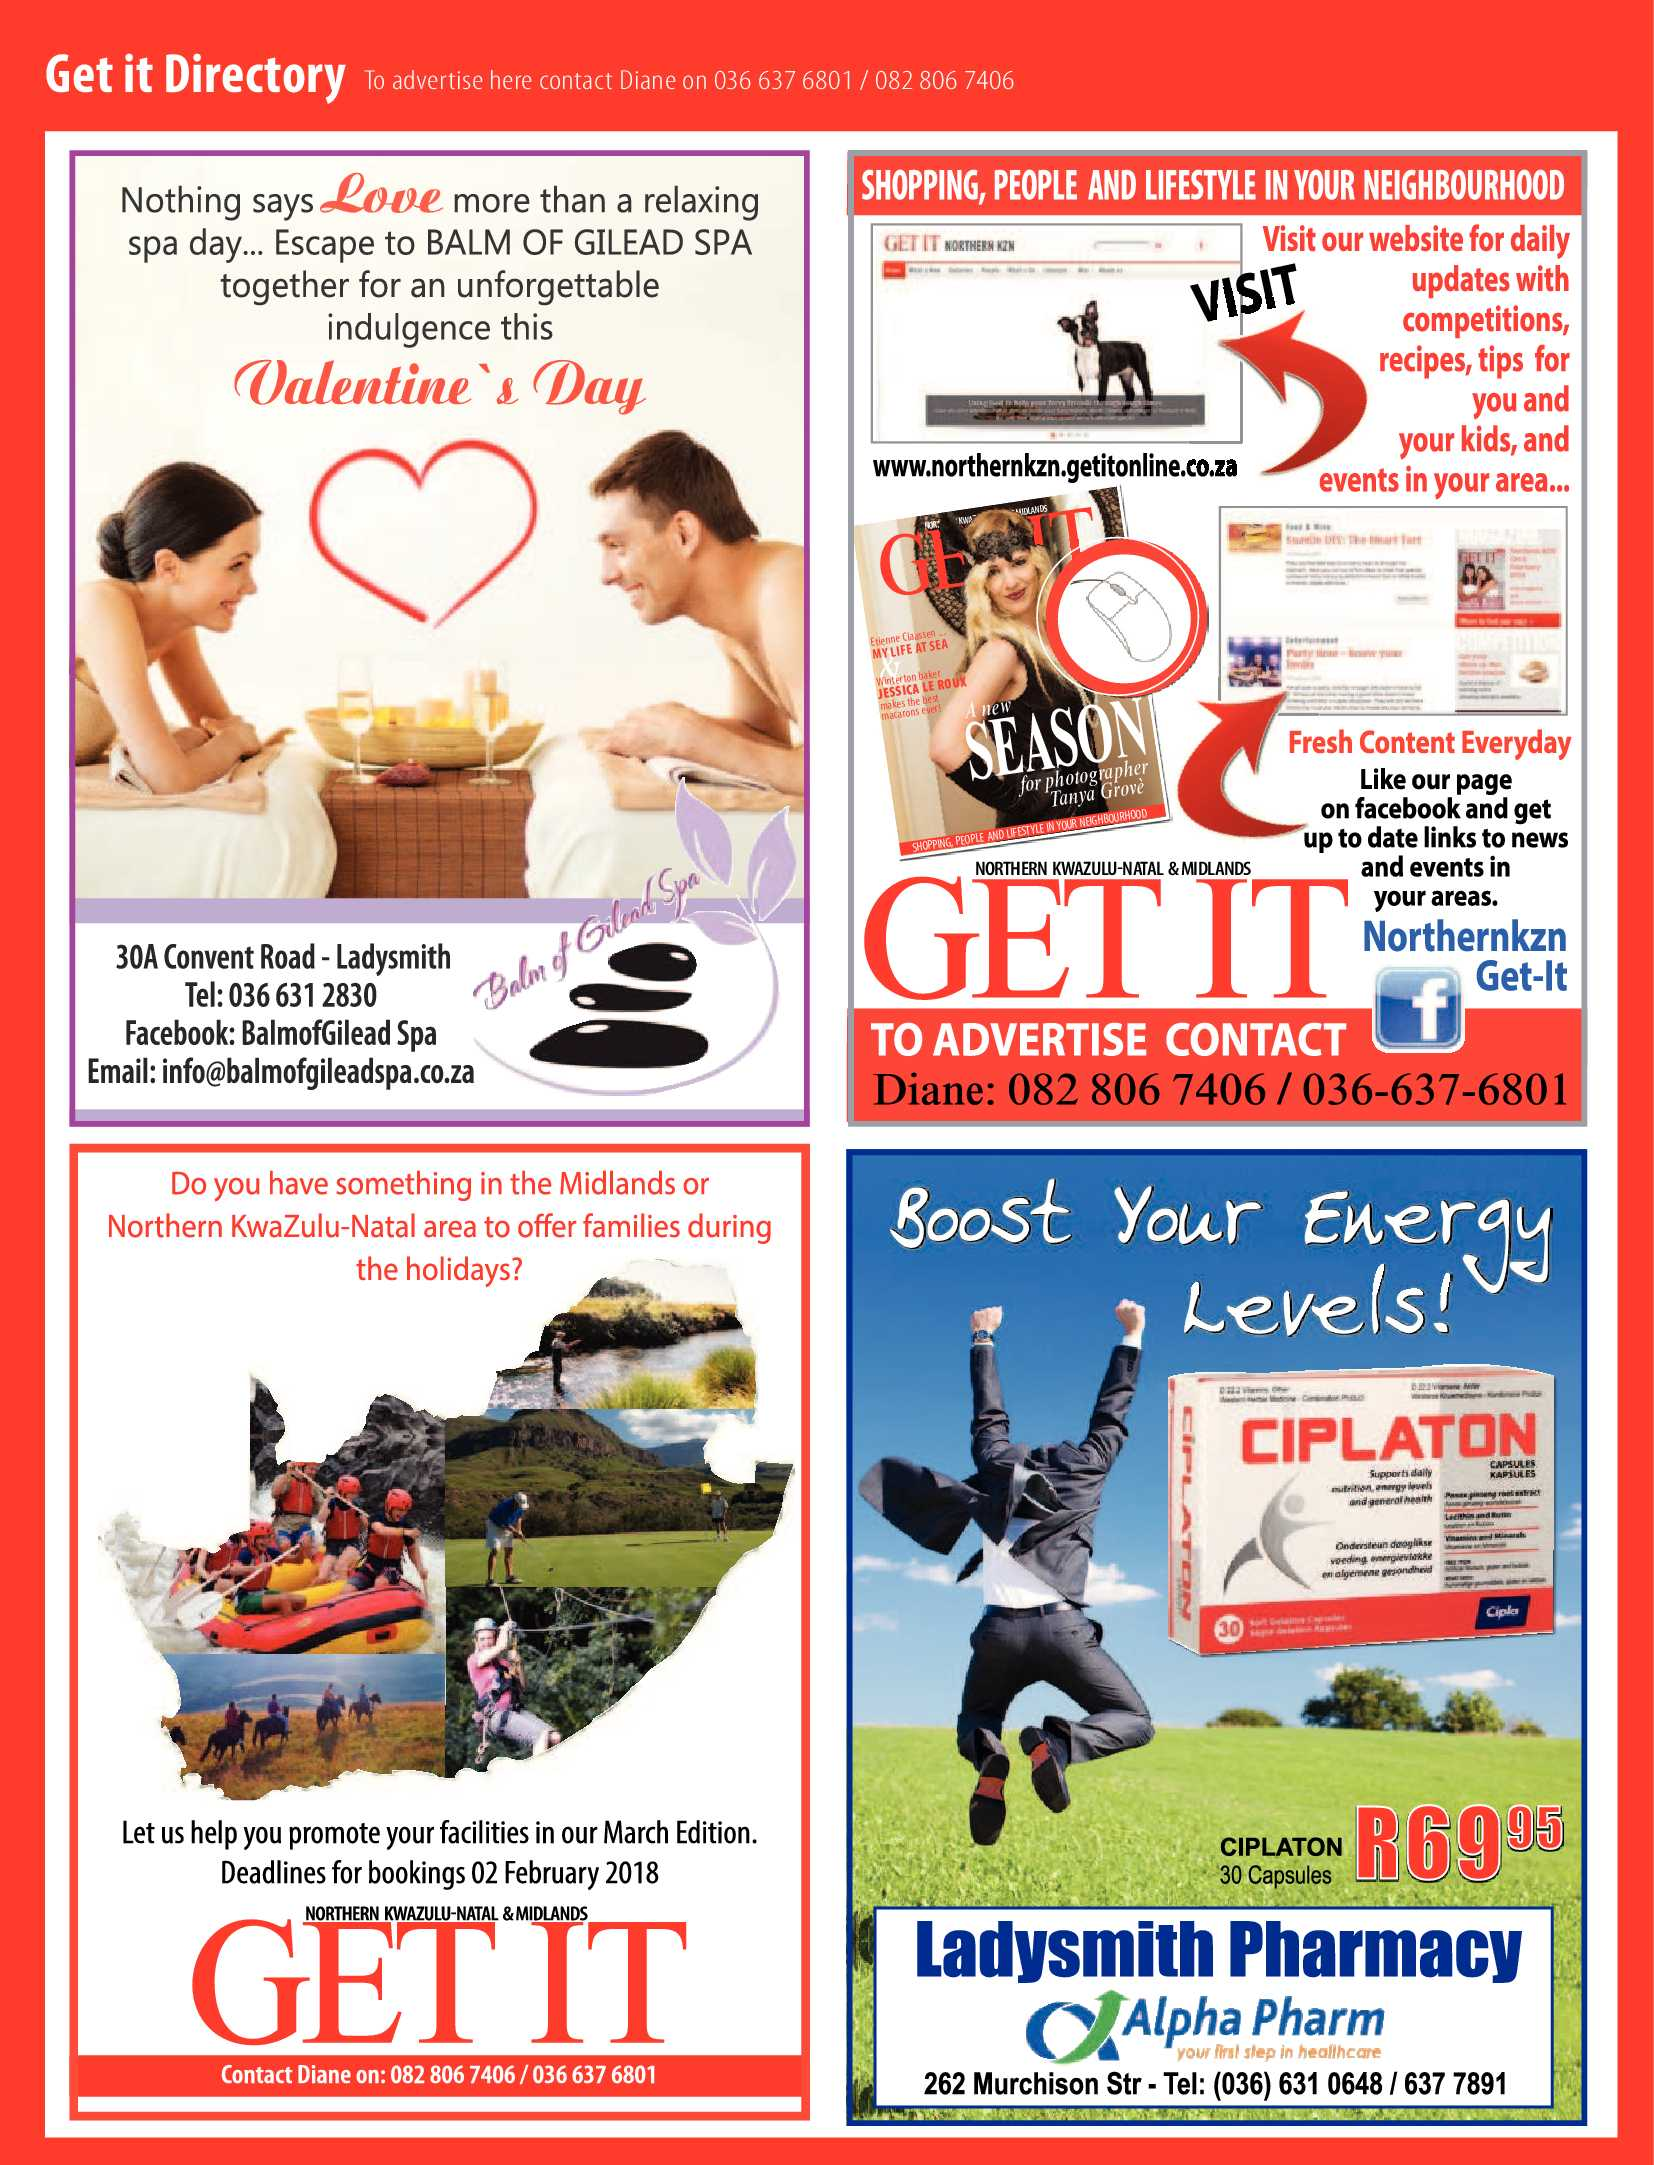 get-nothern-kzn-midlands-february-2018-epapers-page-32